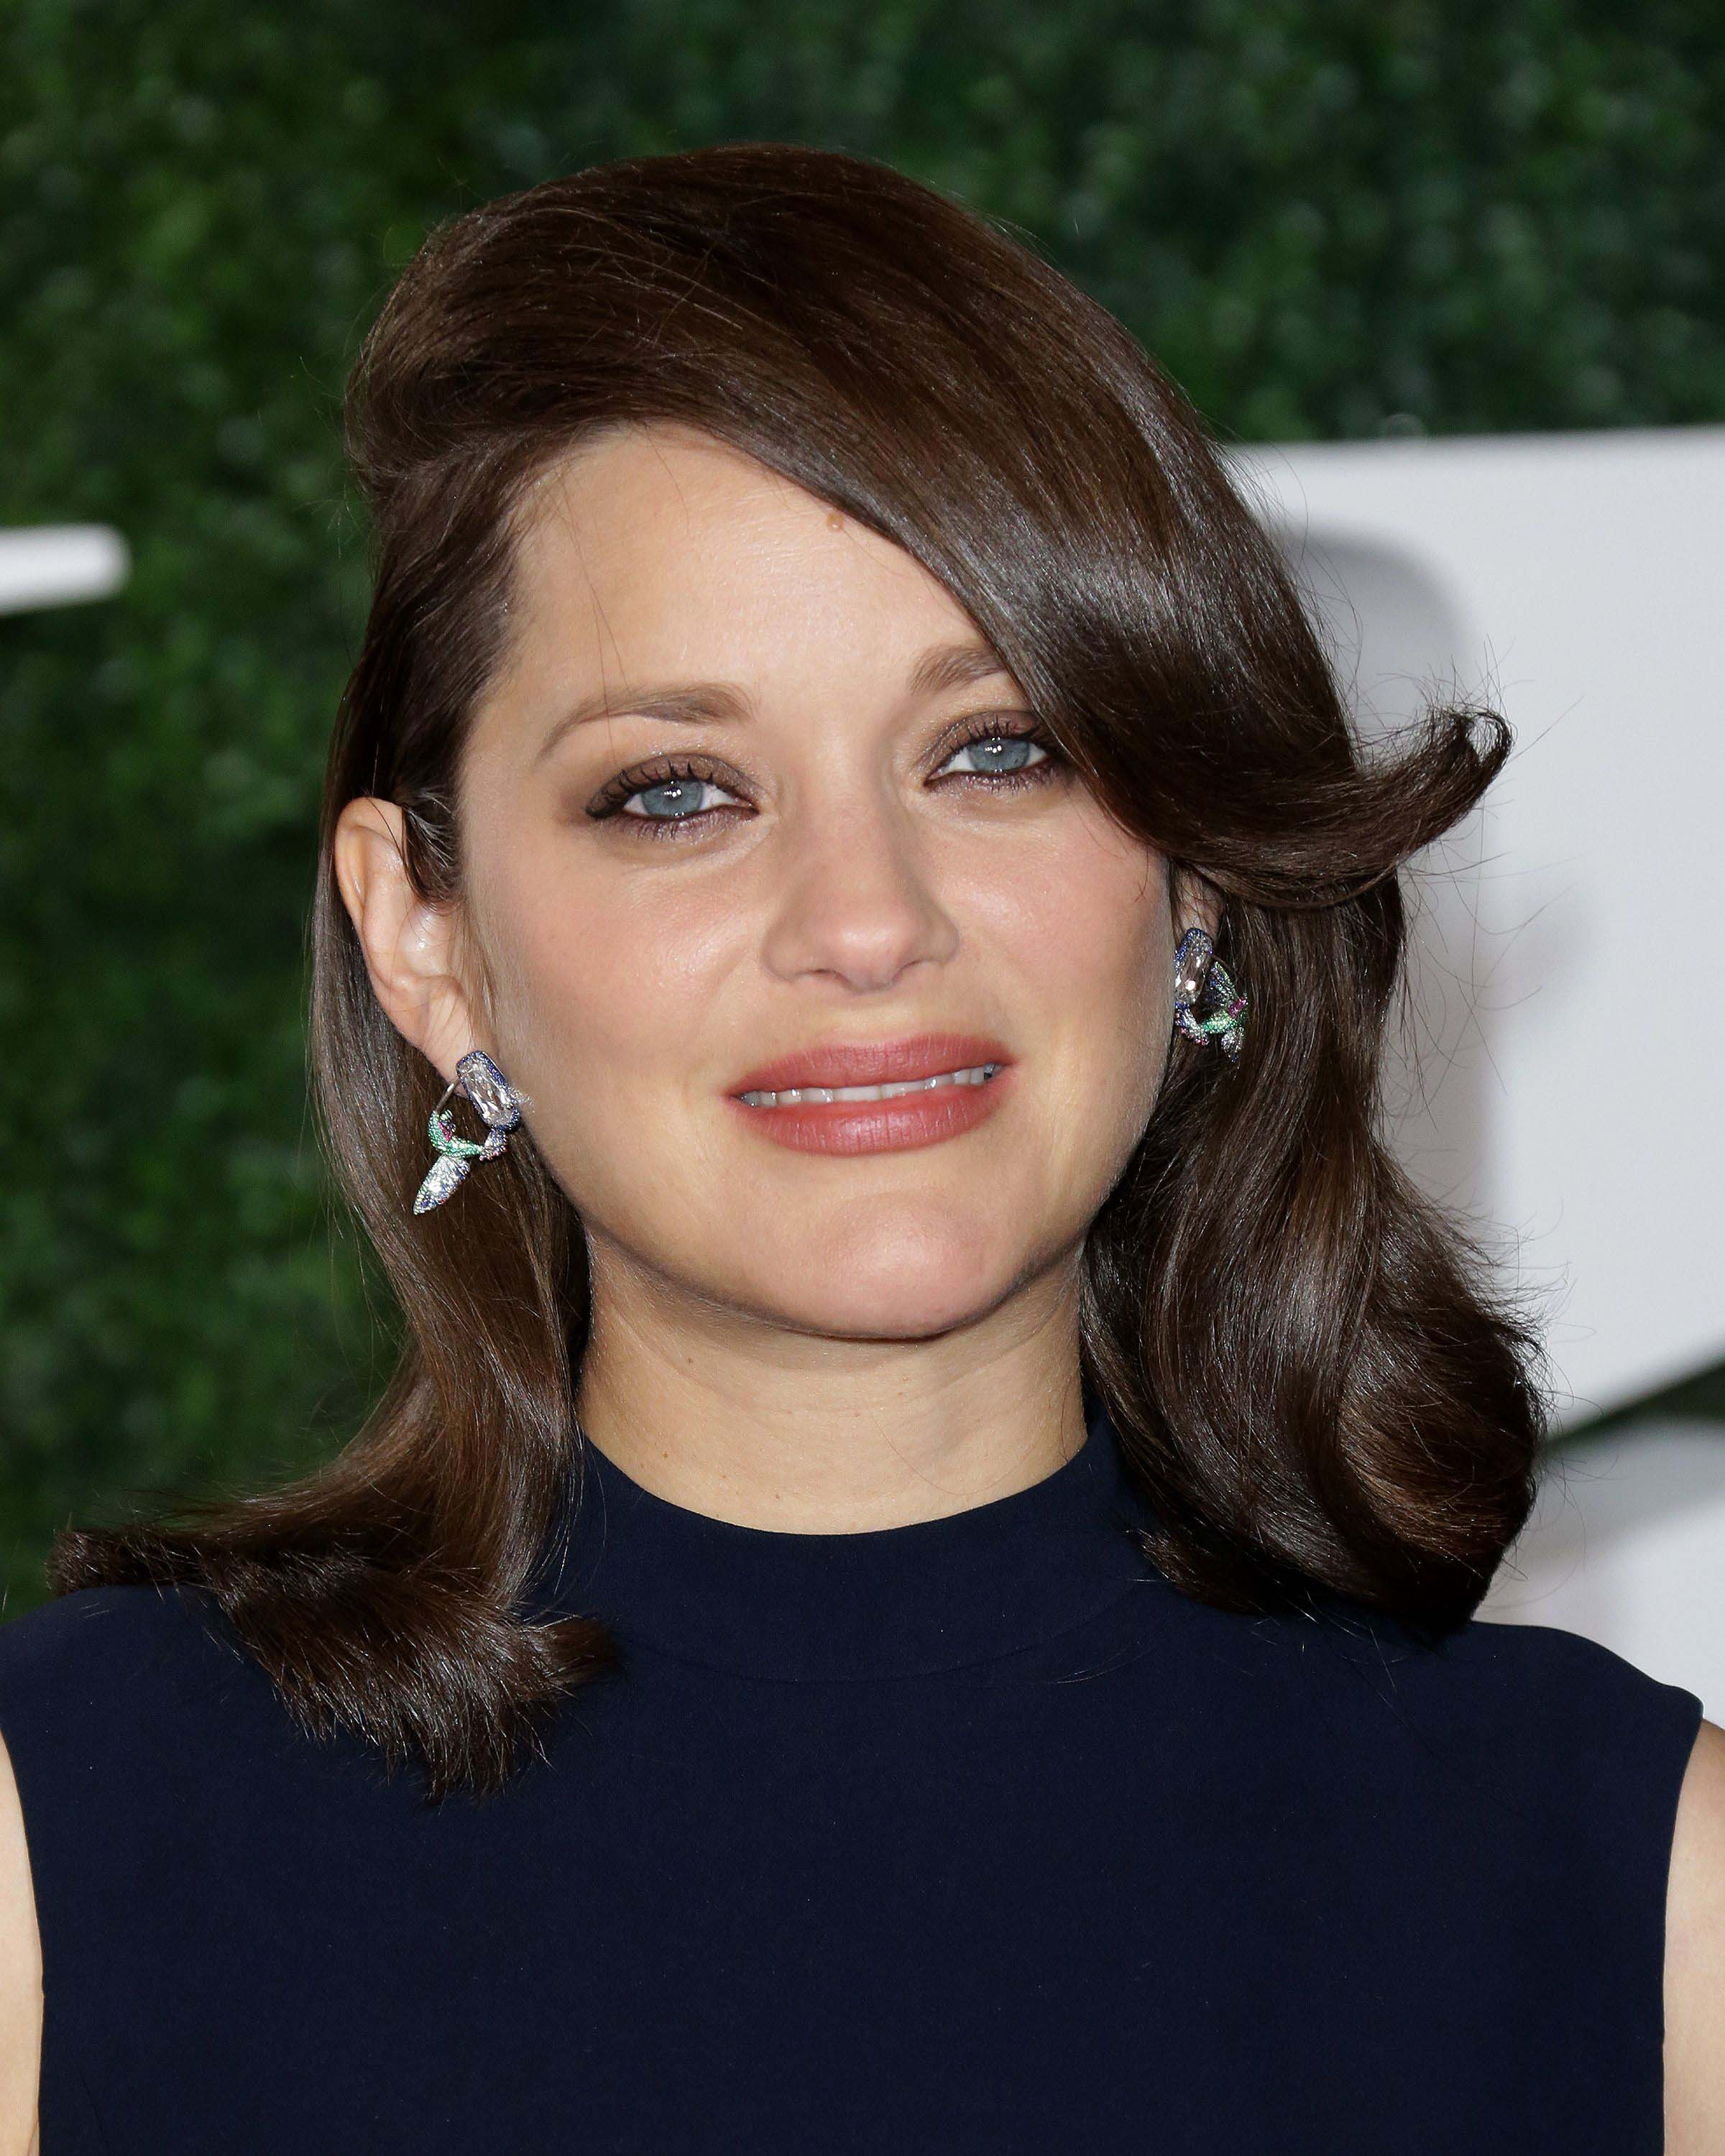 Close up shot of marion cotillard with brown chocolate hair, wearing blue top and drop earrings